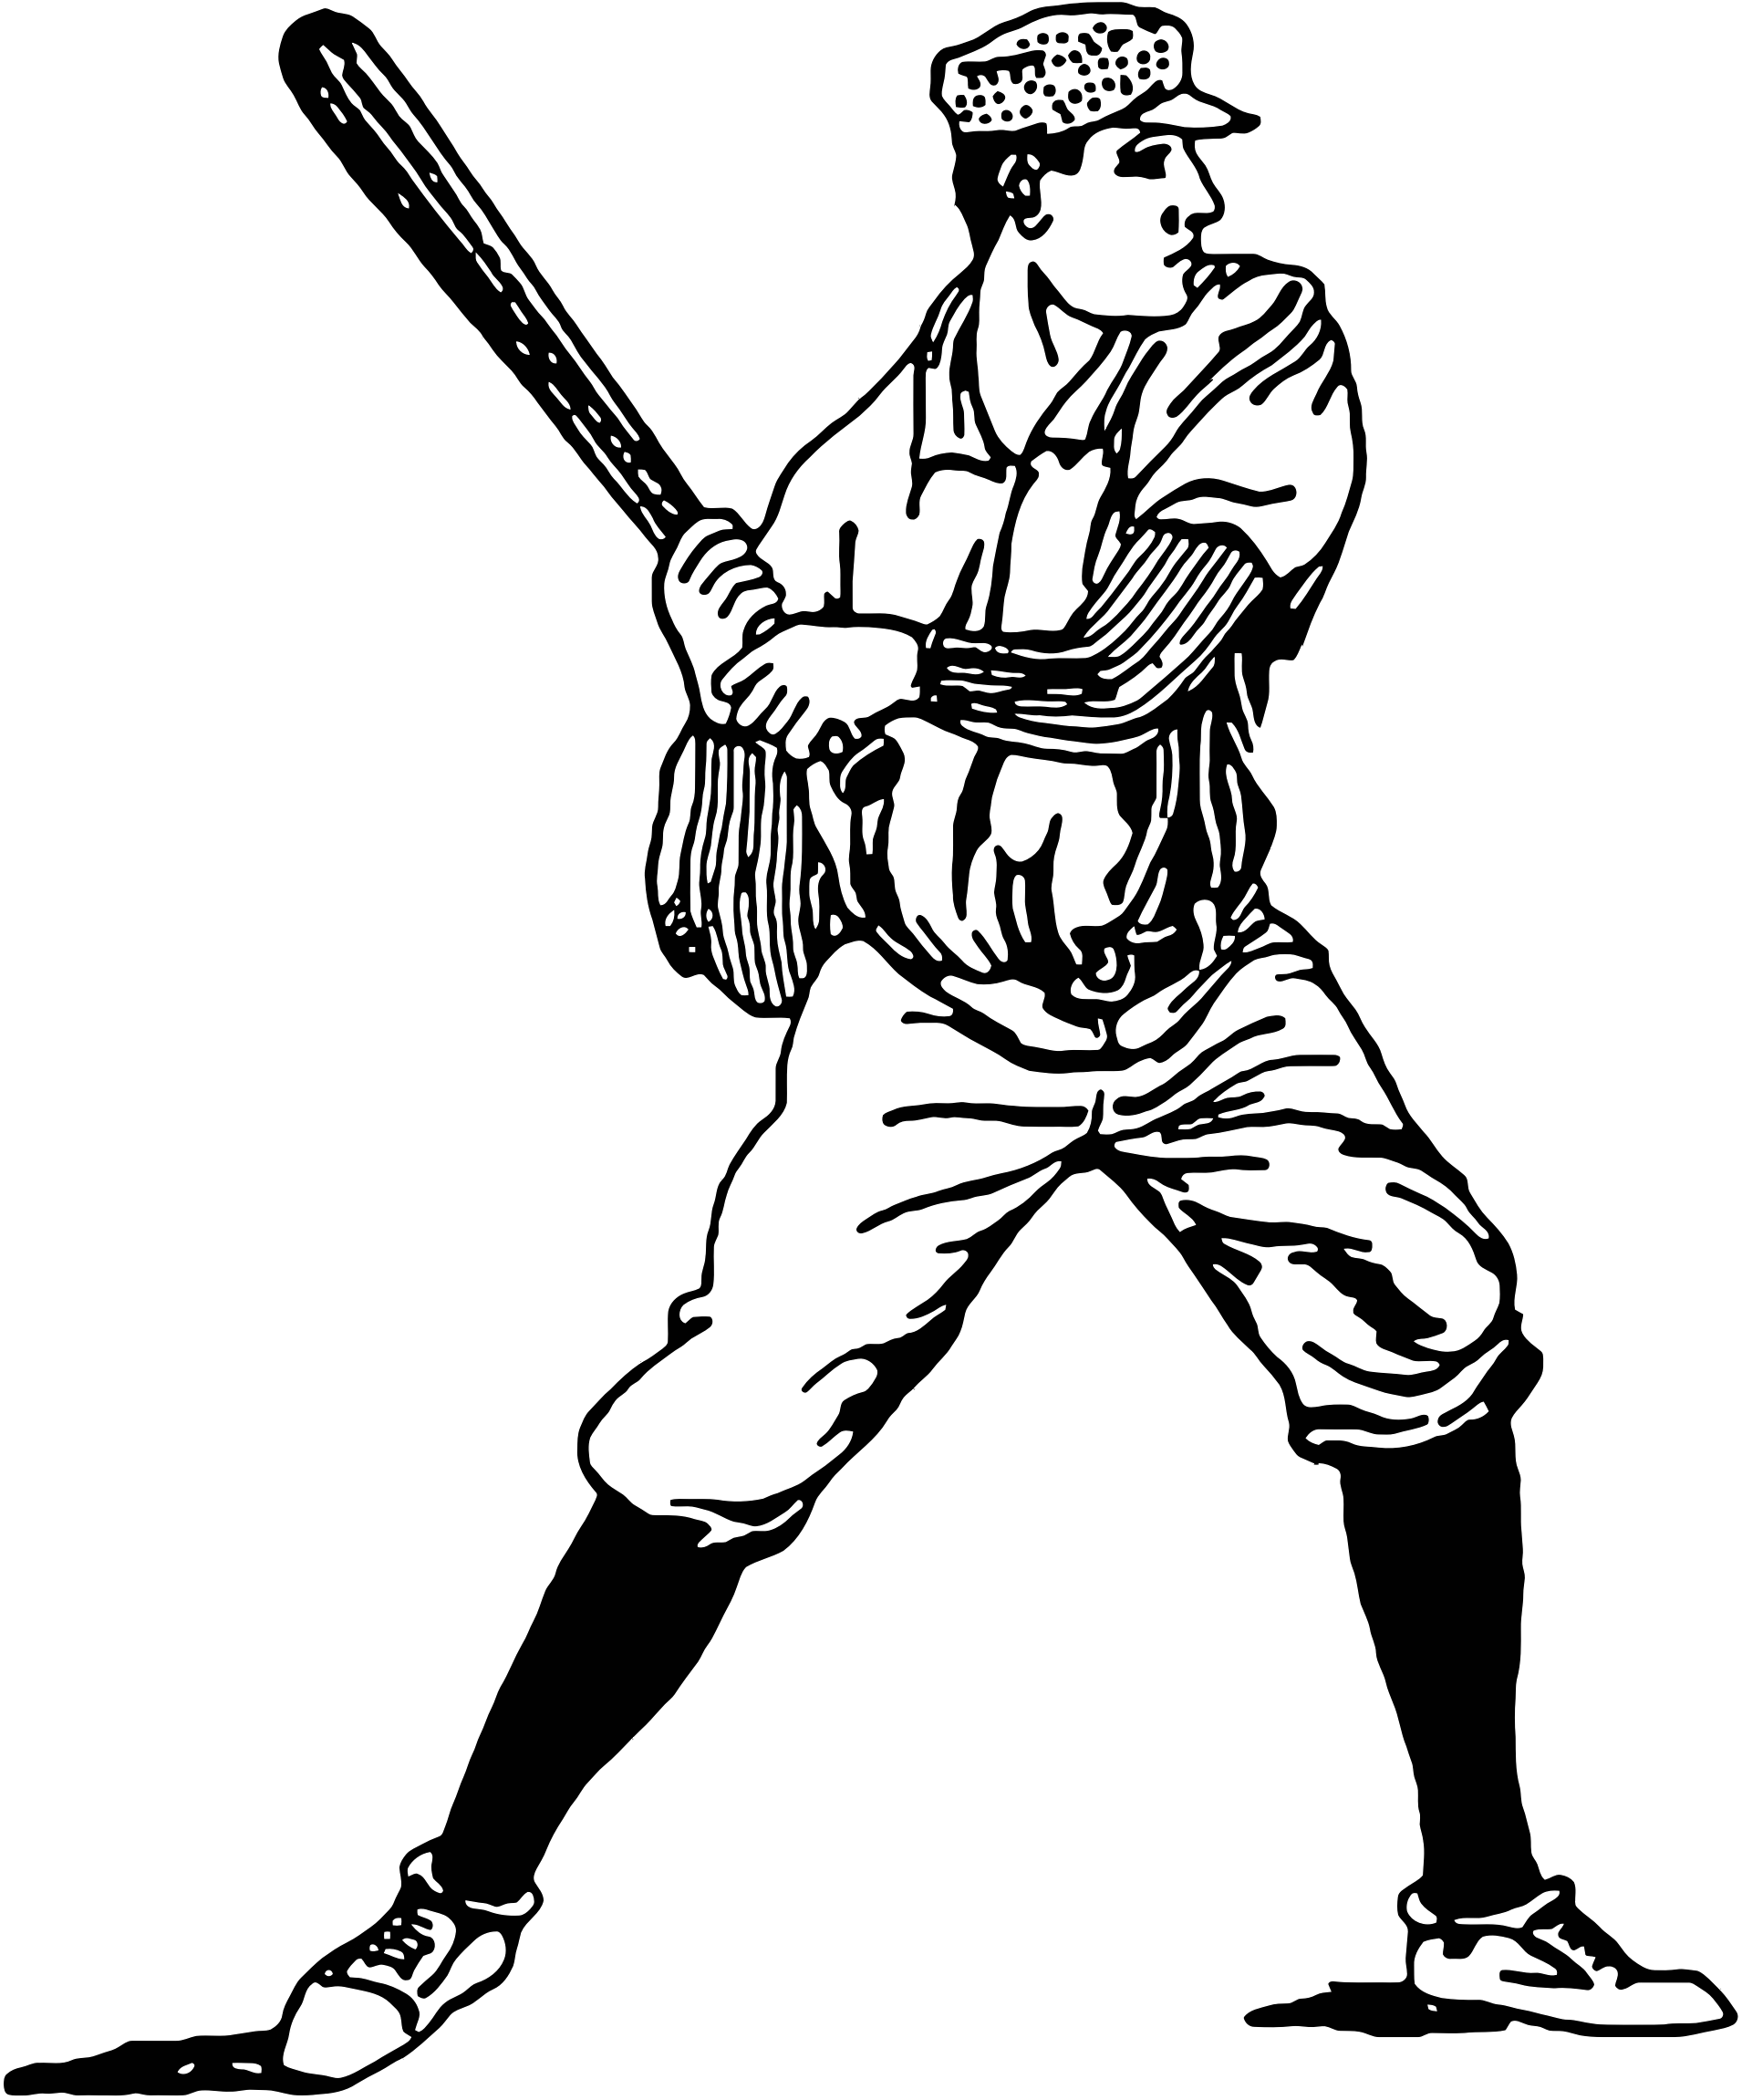 Sports baseball clipart jpg black and white download Clipart - Vintage Baseball Player Illustration jpg black and white download